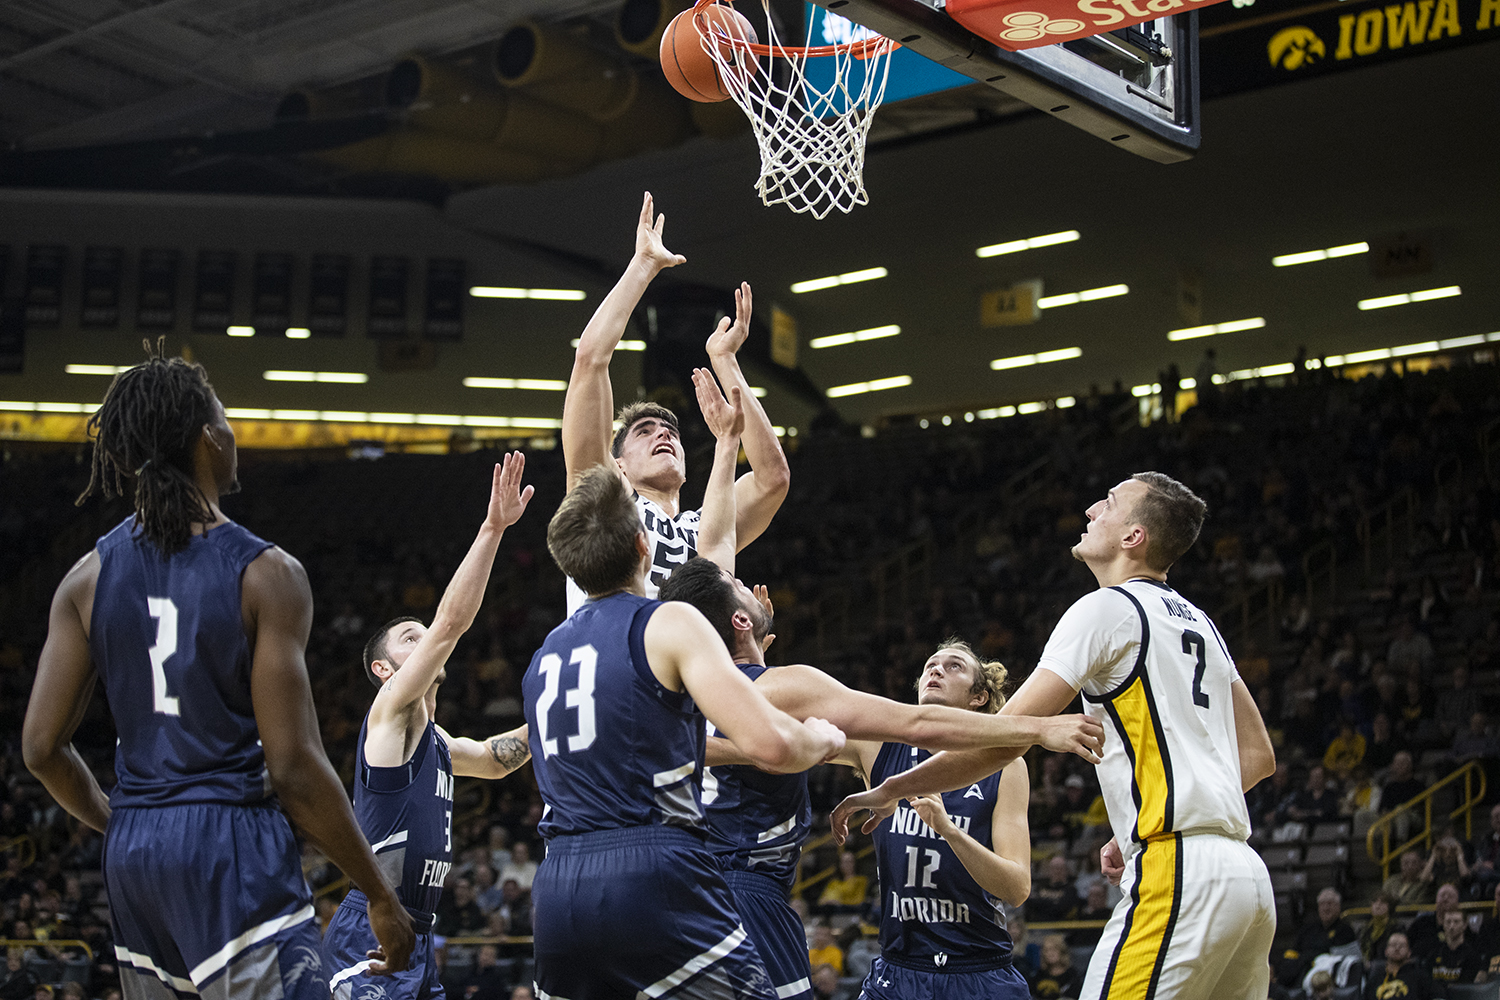 Center Luka Garza attempts a basket during the Iowa Men's basketball game vs University of North Florida in Carver-Hawkeye Arena on Thursday Nov. 21, 2019. The Hawkeyes defeated the Osprey 83-68.